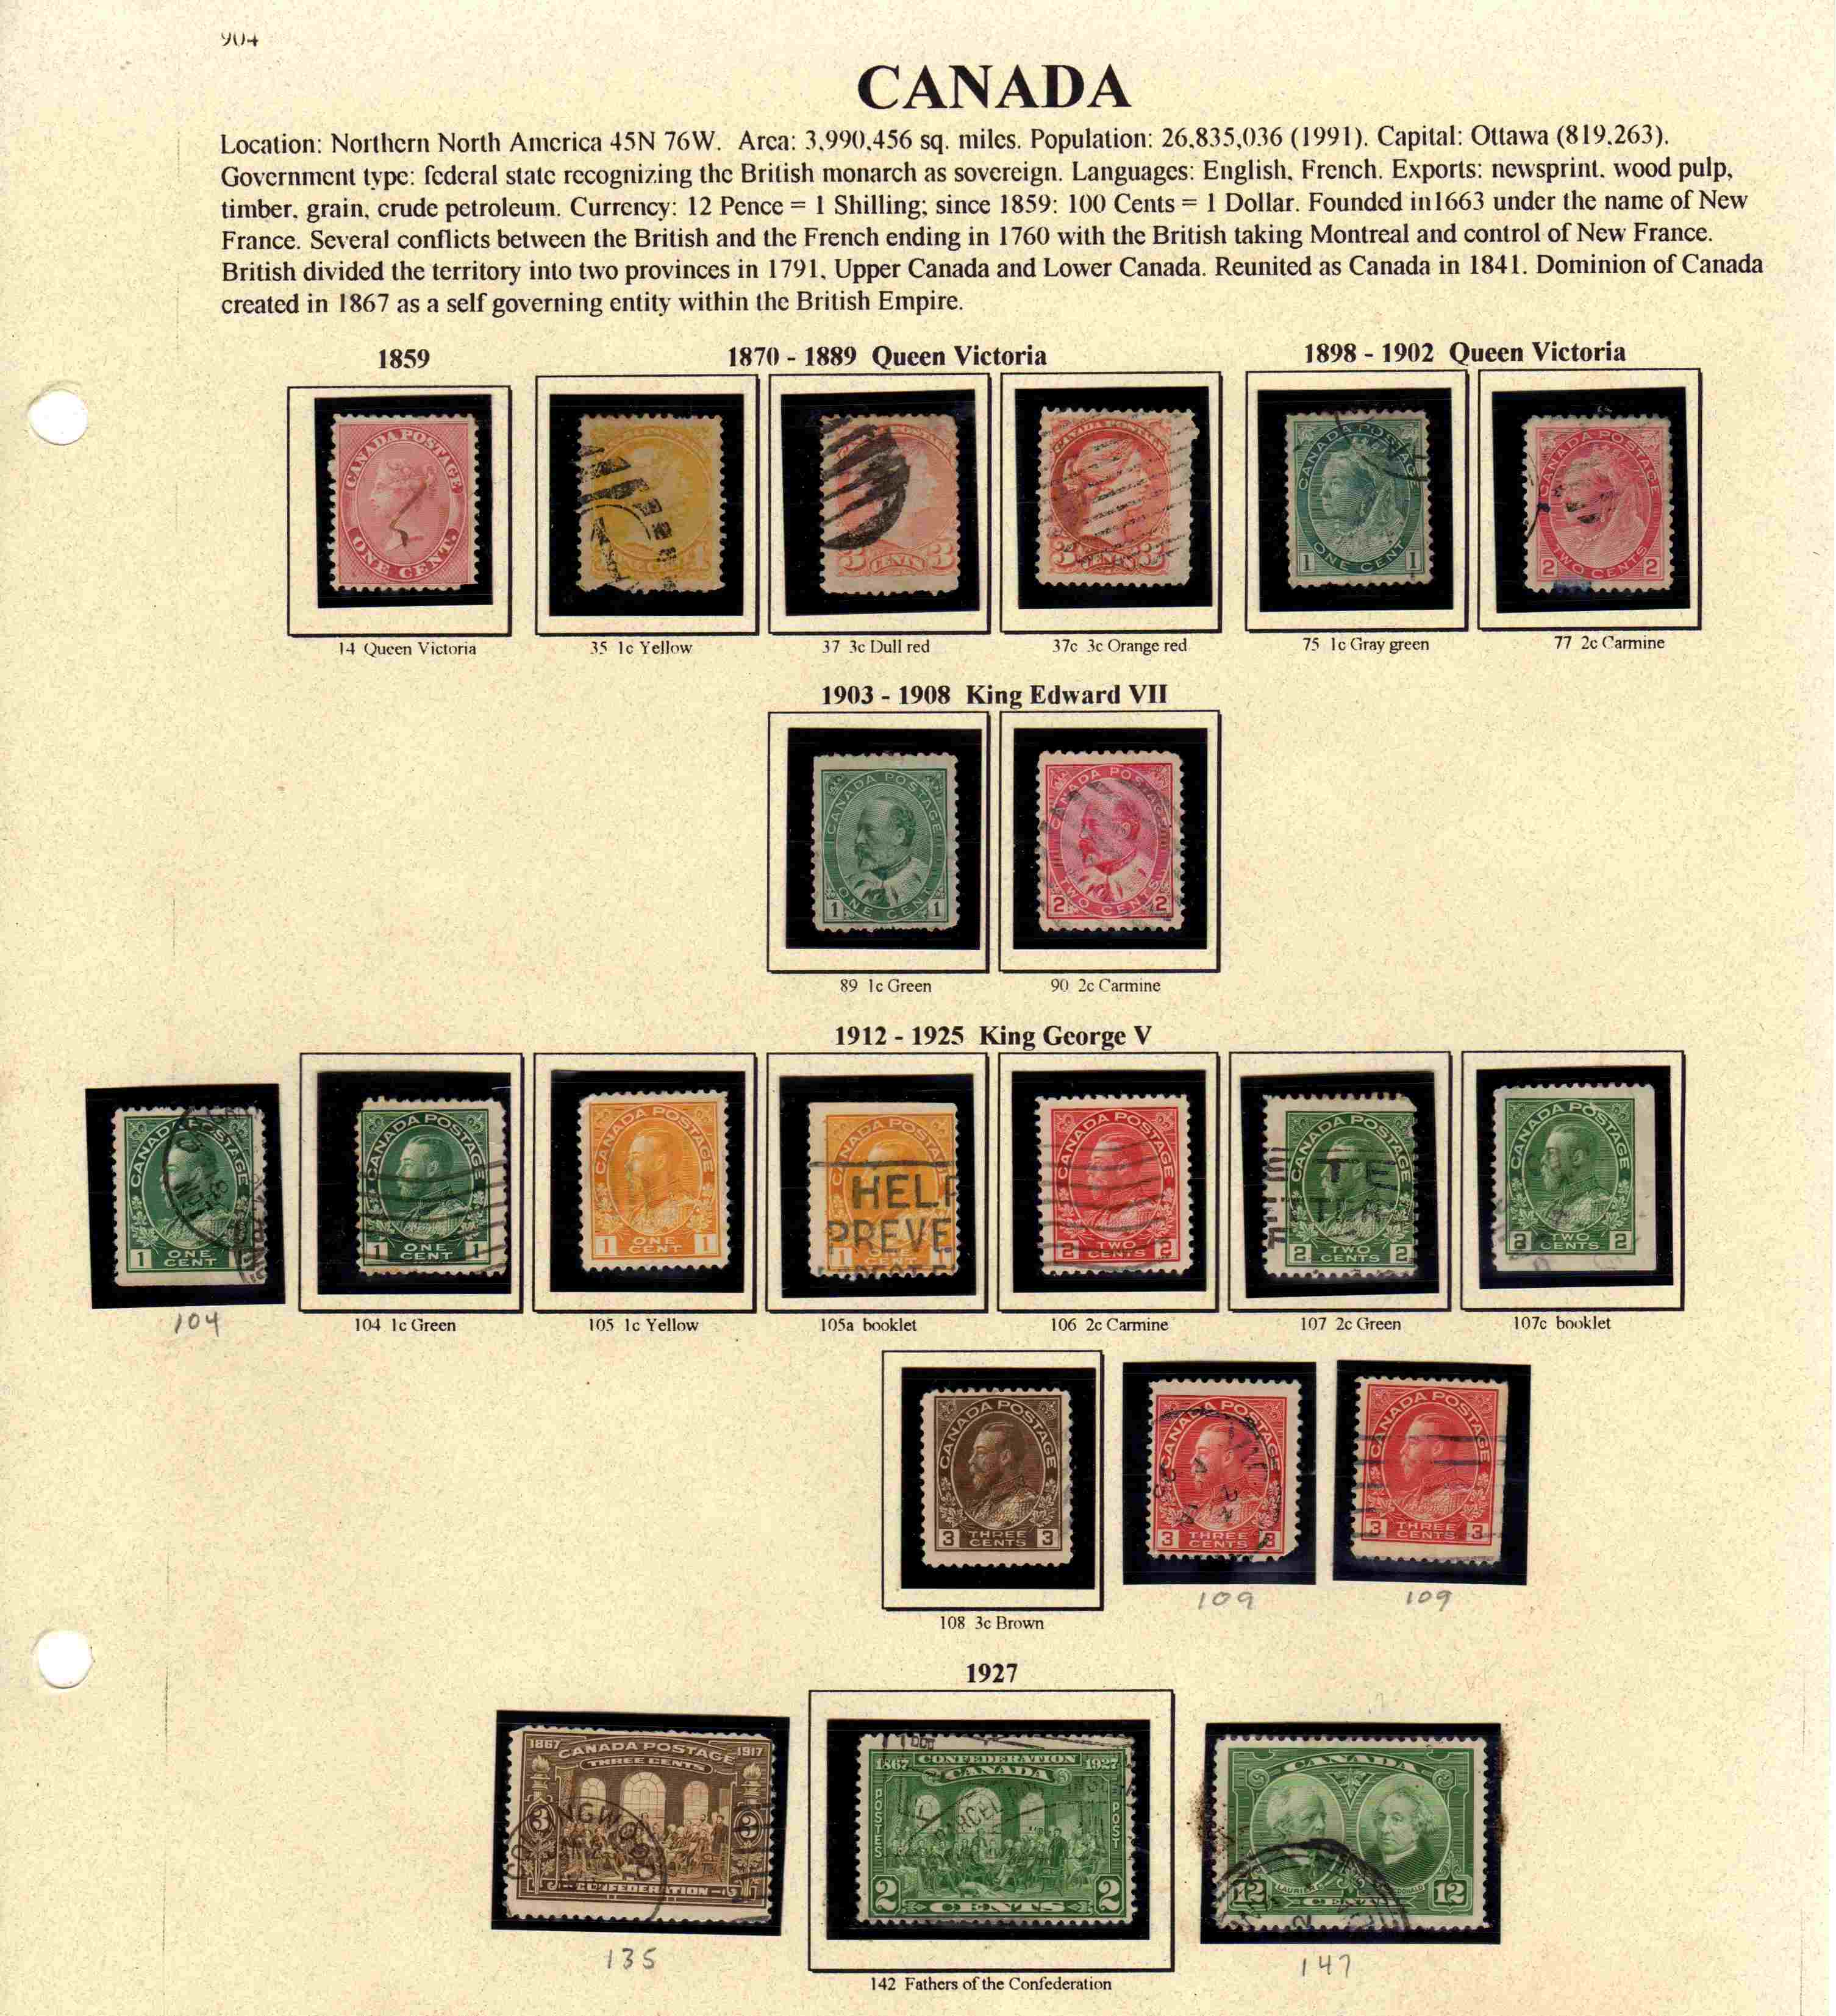 Stamps/CanadaP1.jpg